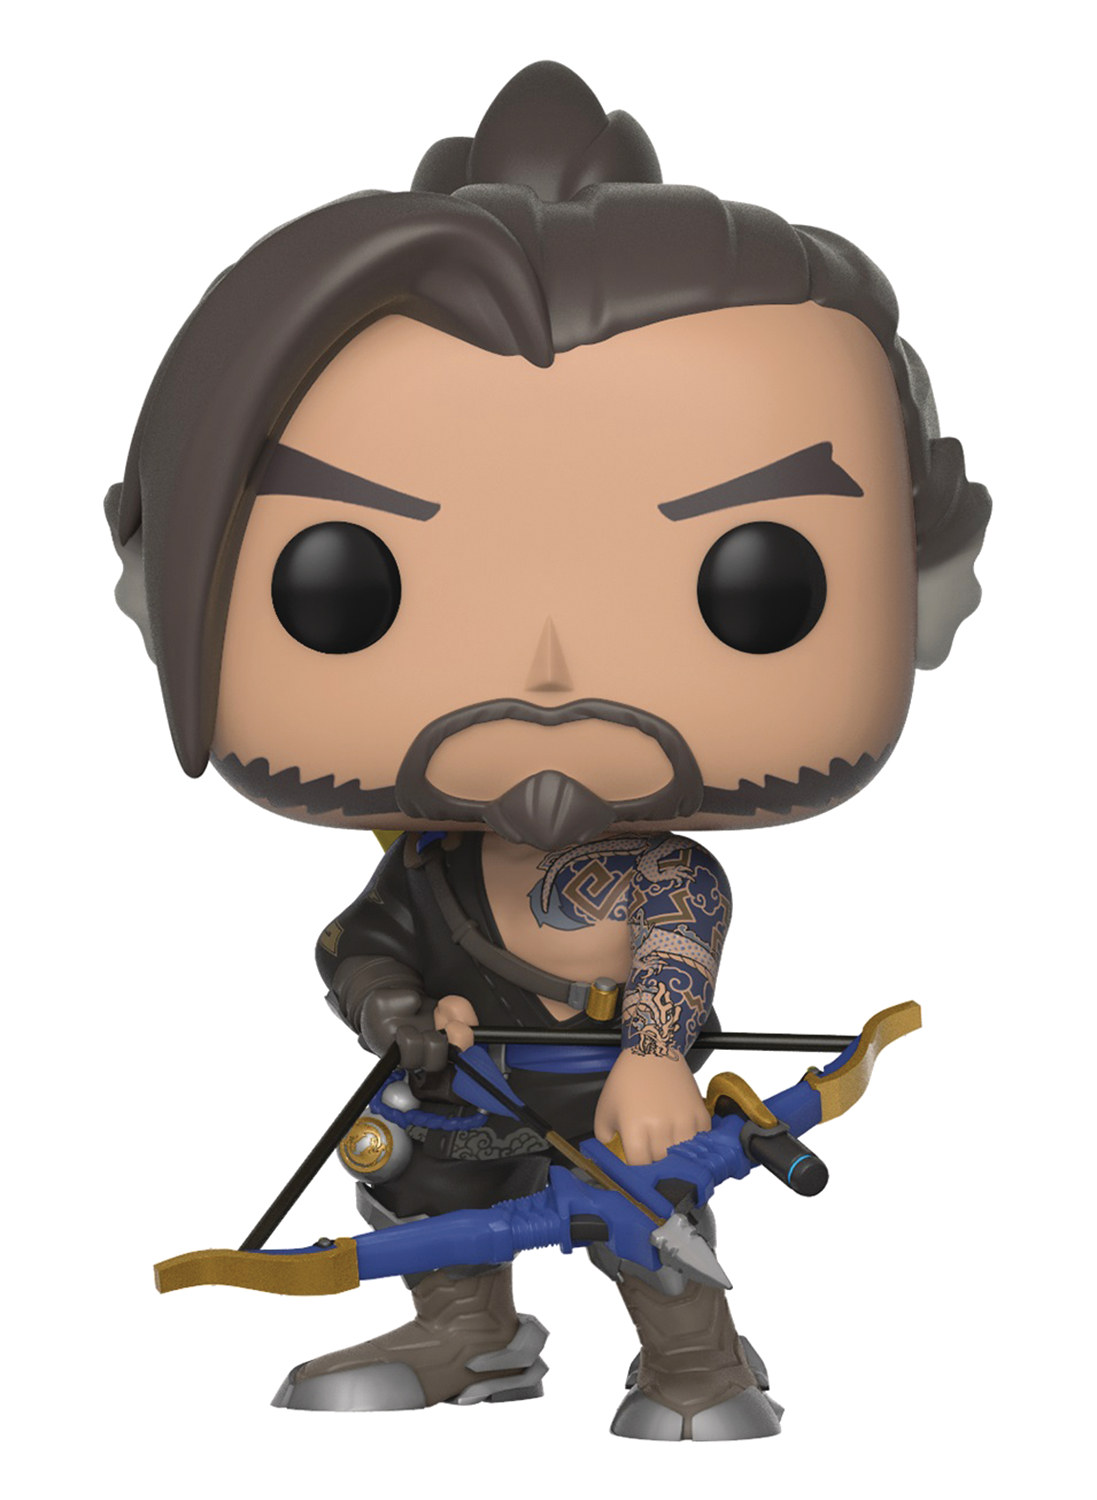 POP GAMES OVERWATCH S4 HANZO VINYL FIGURE